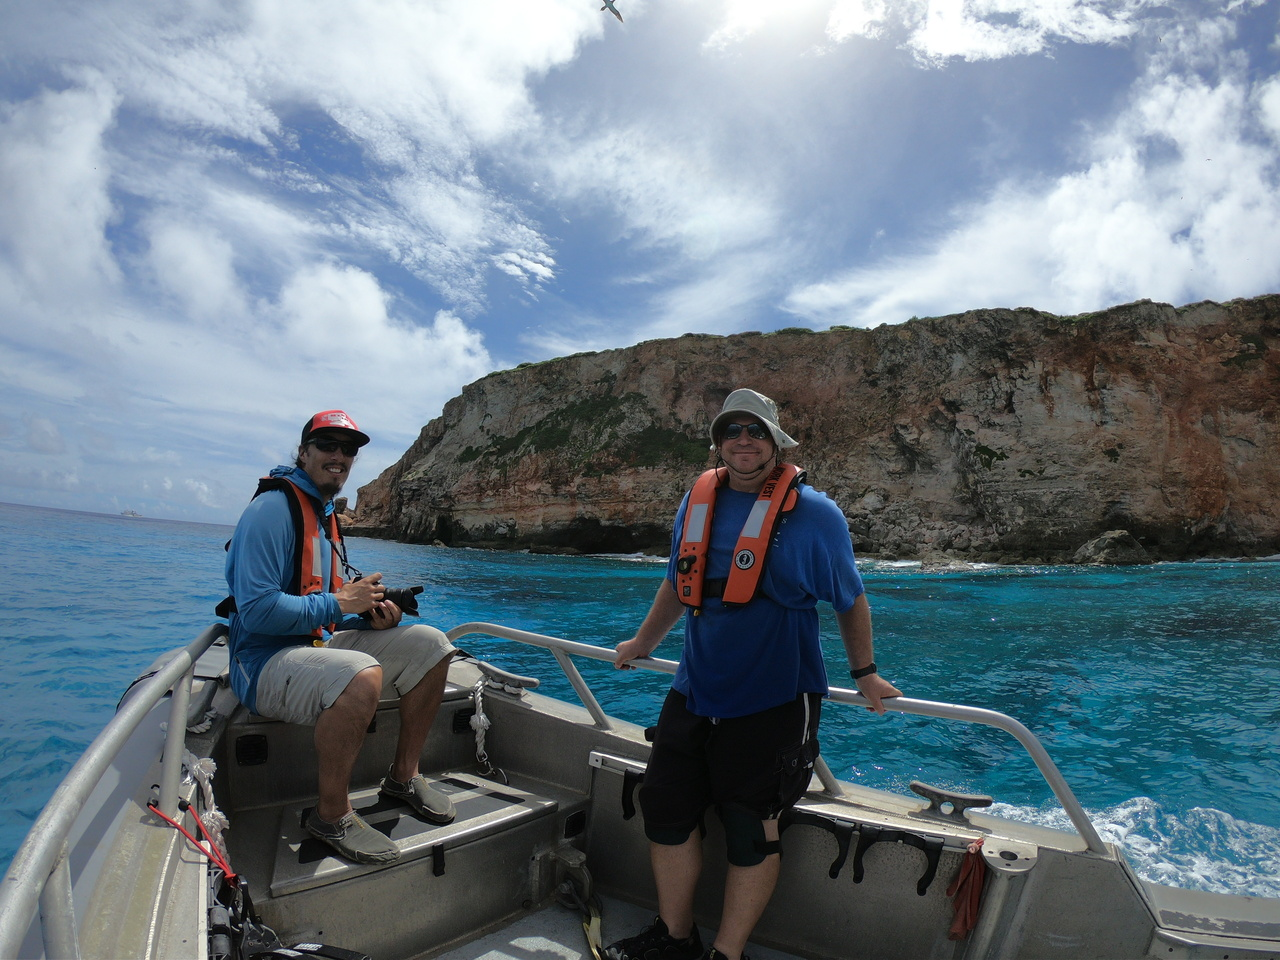 The observer team conducted a small boat survey around FDM.